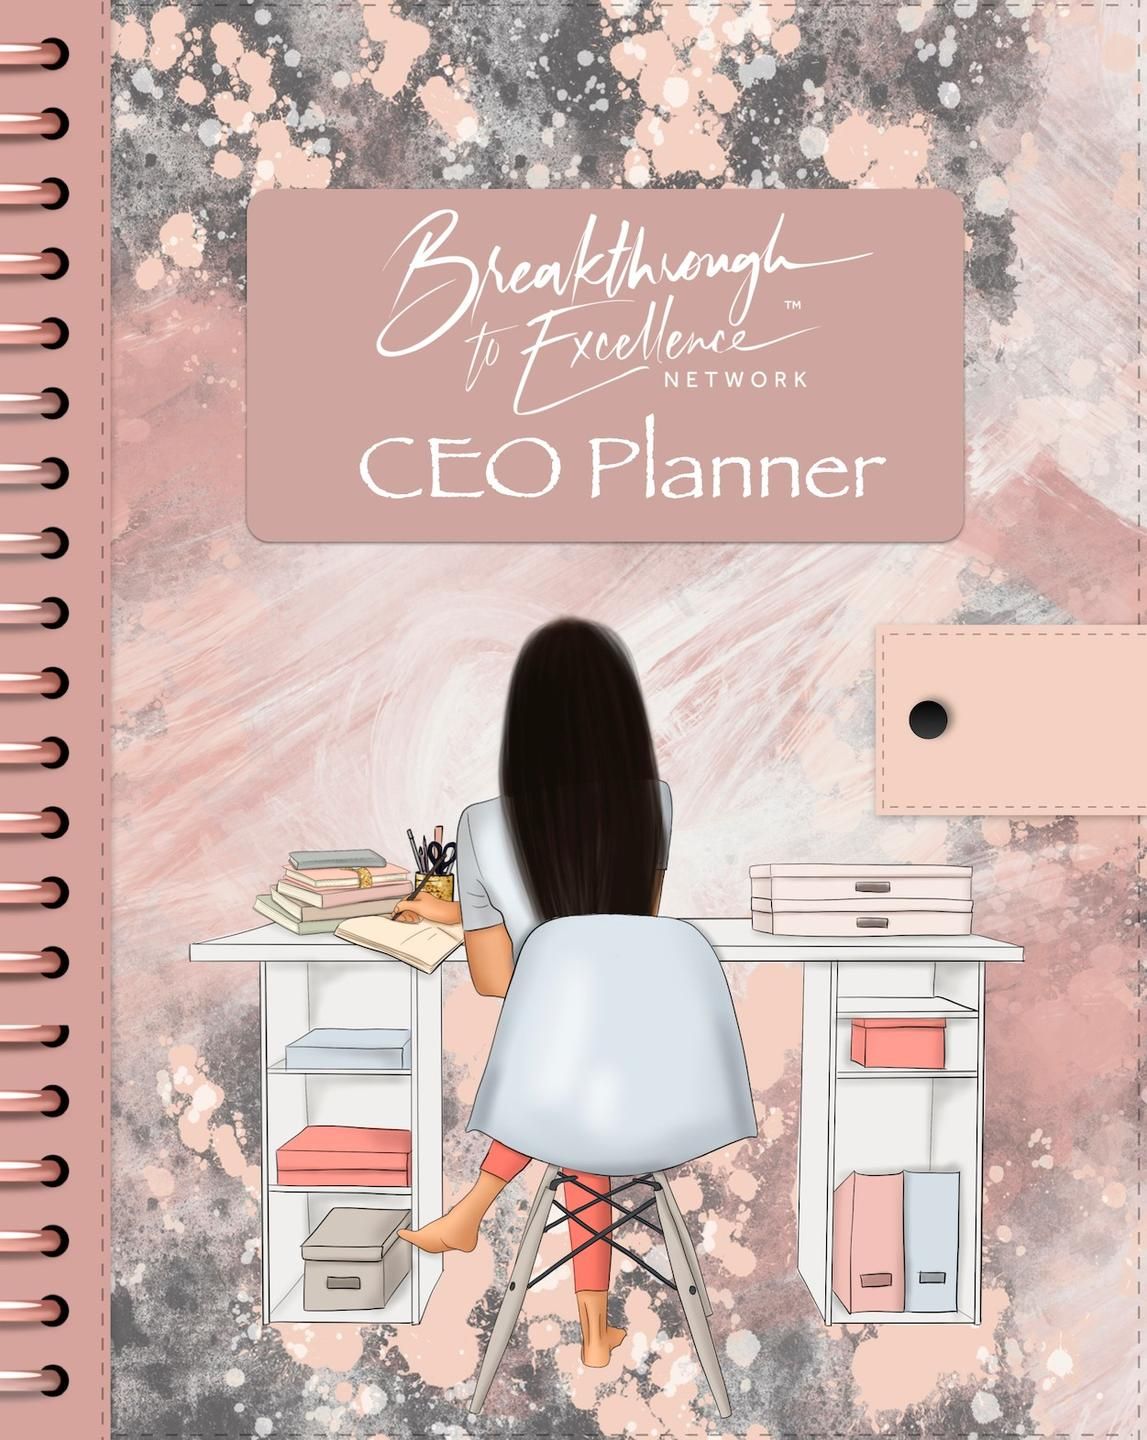 Image of Brown Boss version of Breakthrough to Excellence CEO Planner